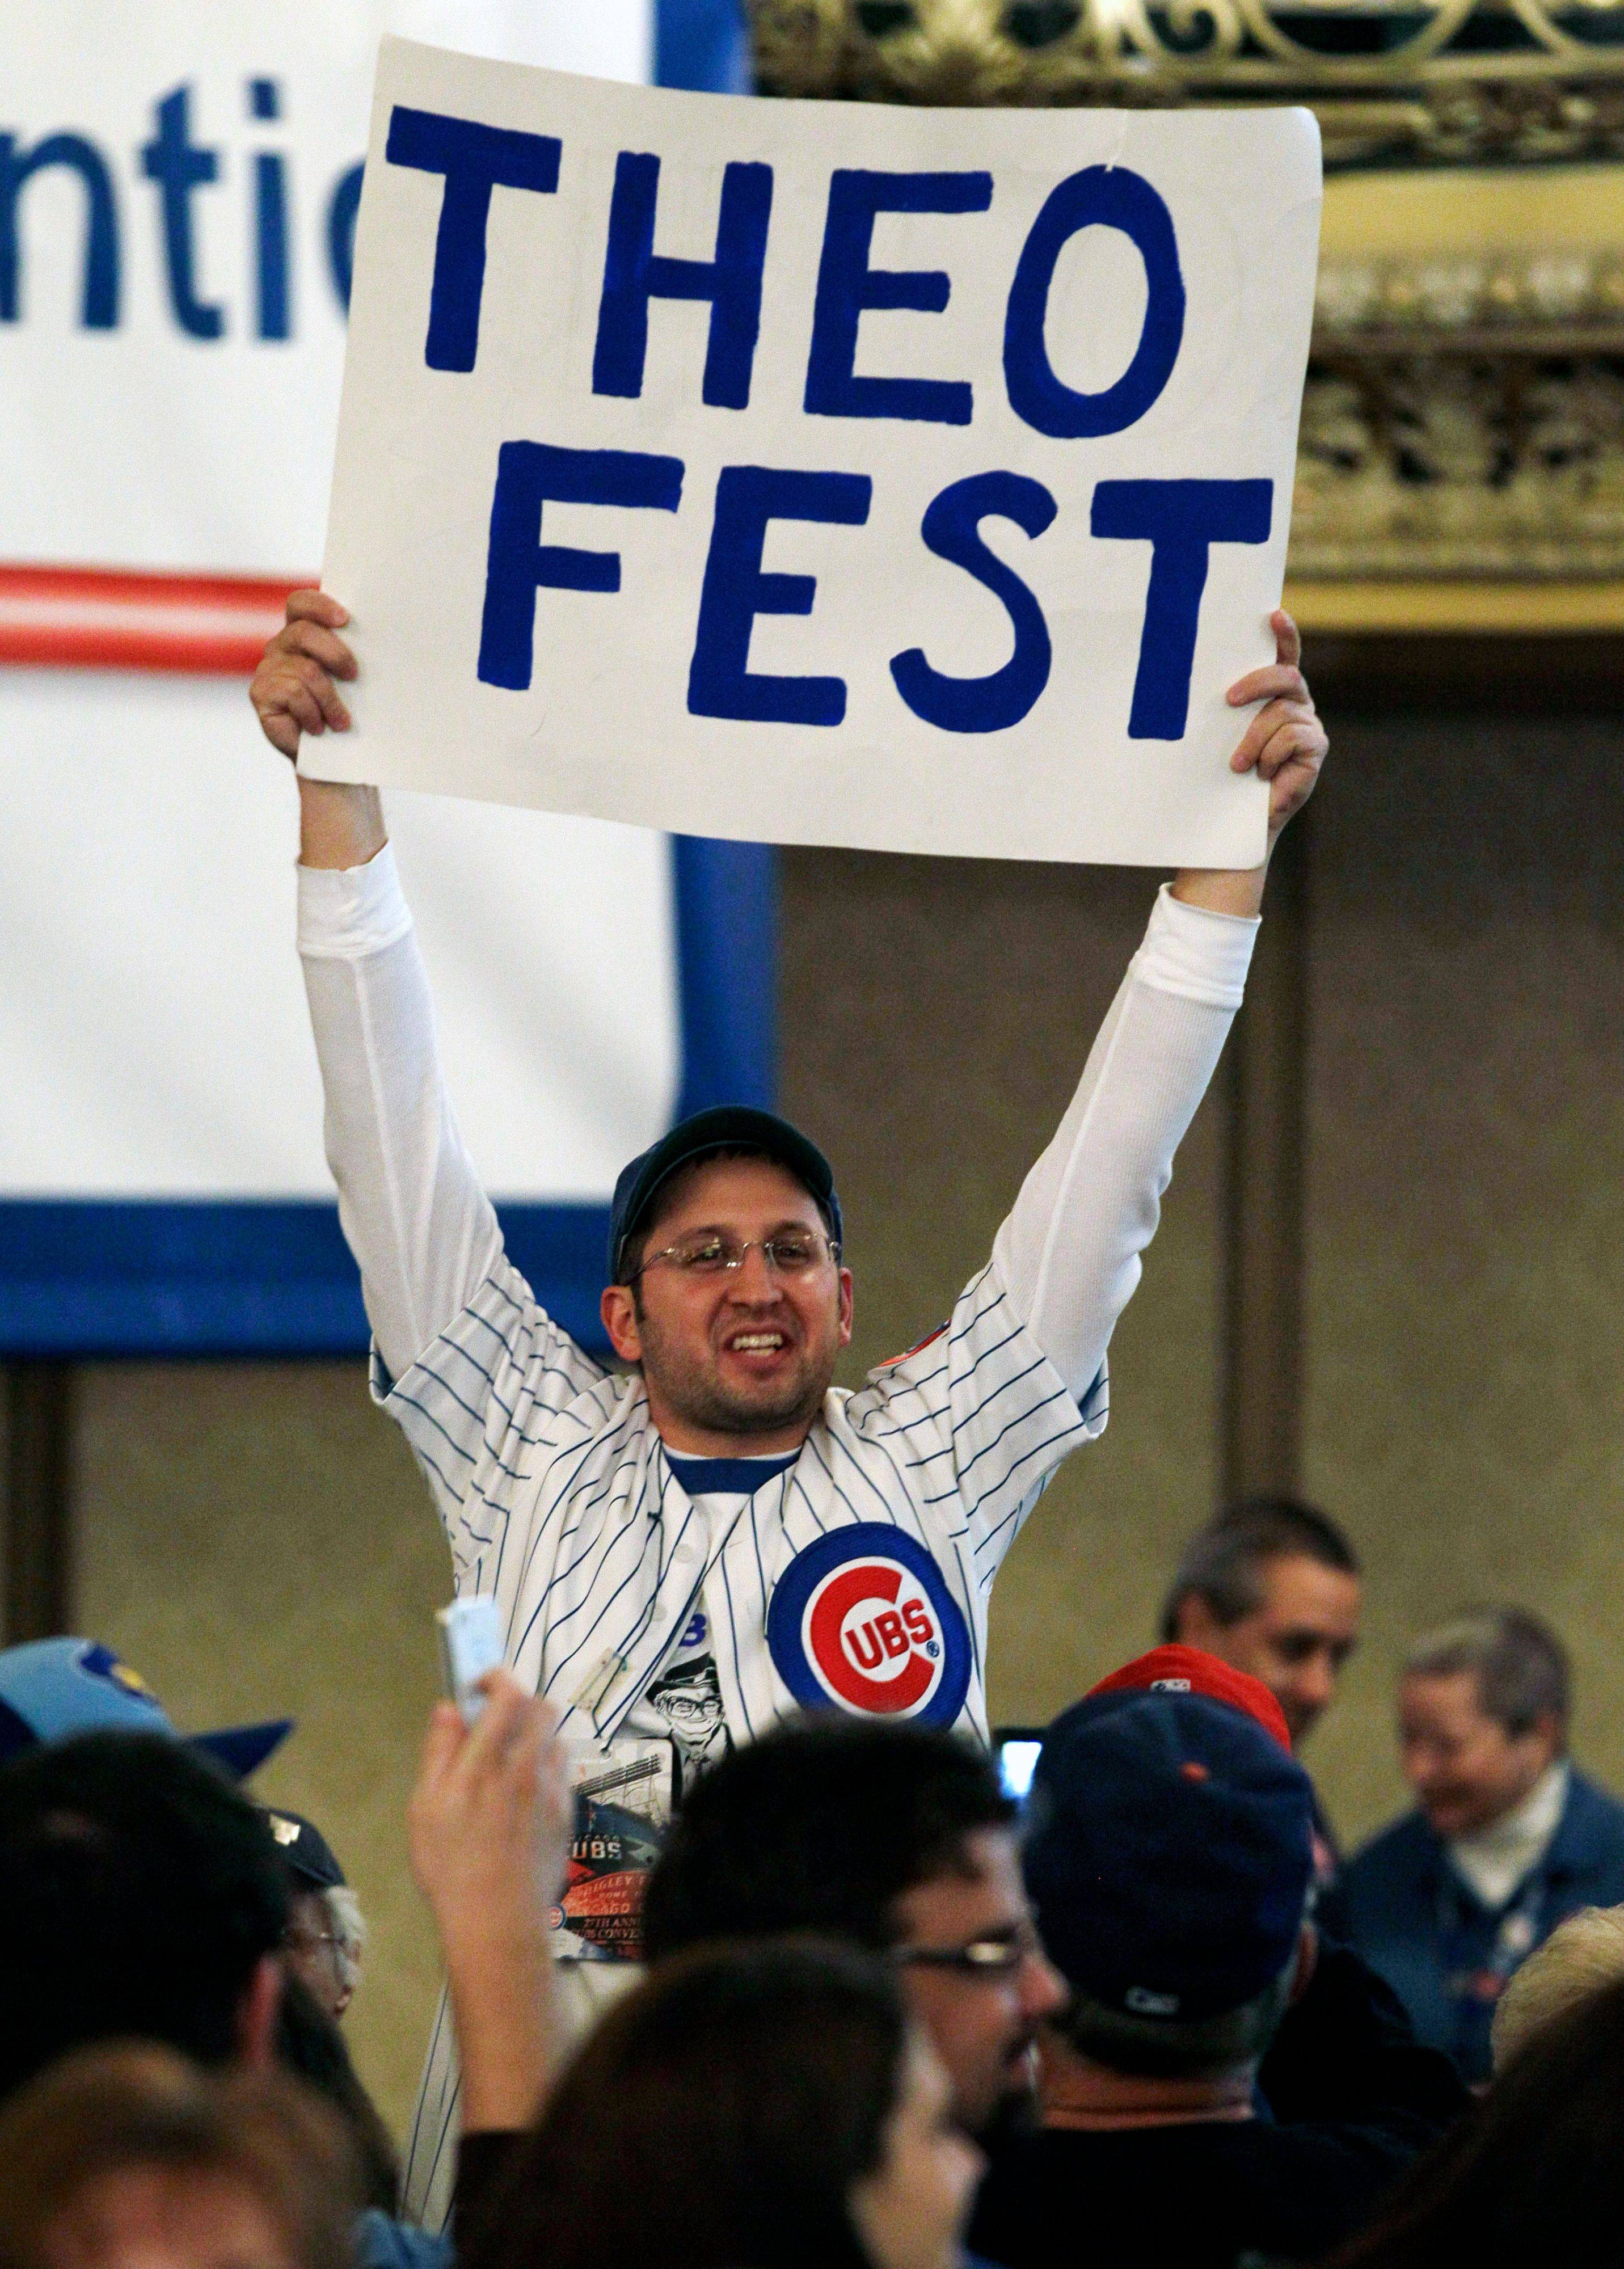 A Chicago Fan holds a sign during the 27th Annual Chicago Cubs Convention in Chicago on Friday, Jan. 13, 2012.